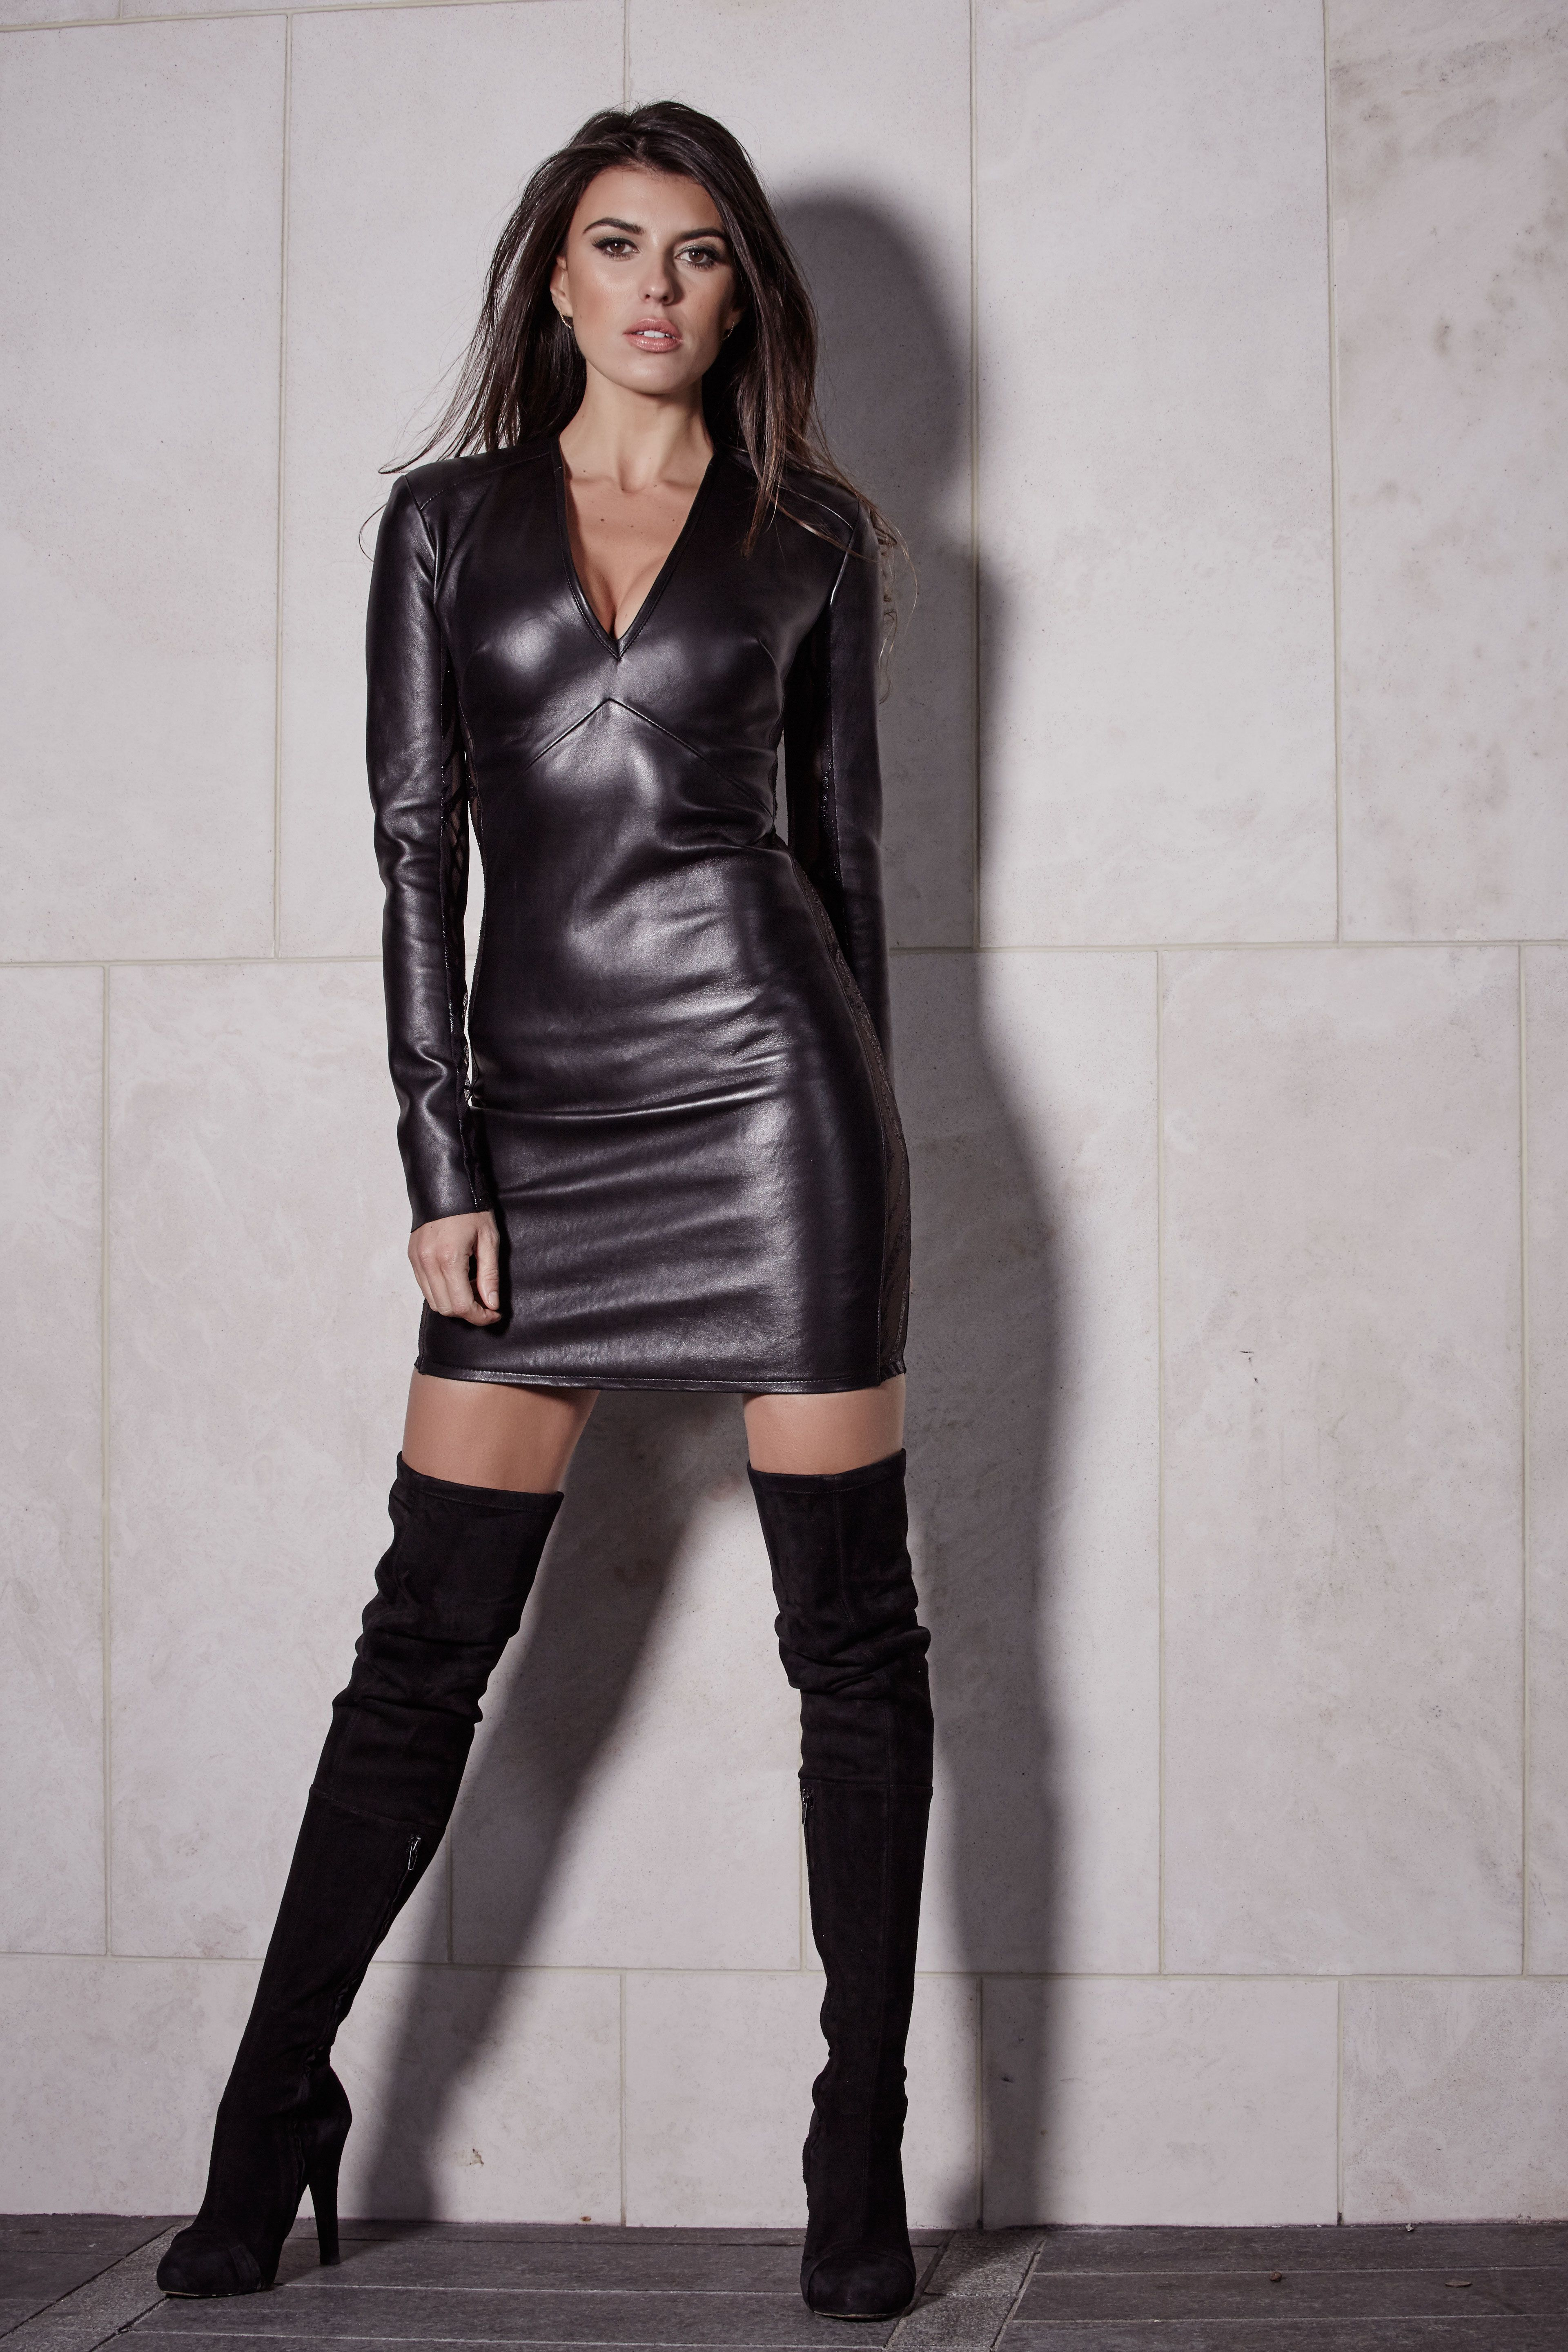 sexy leather fashions